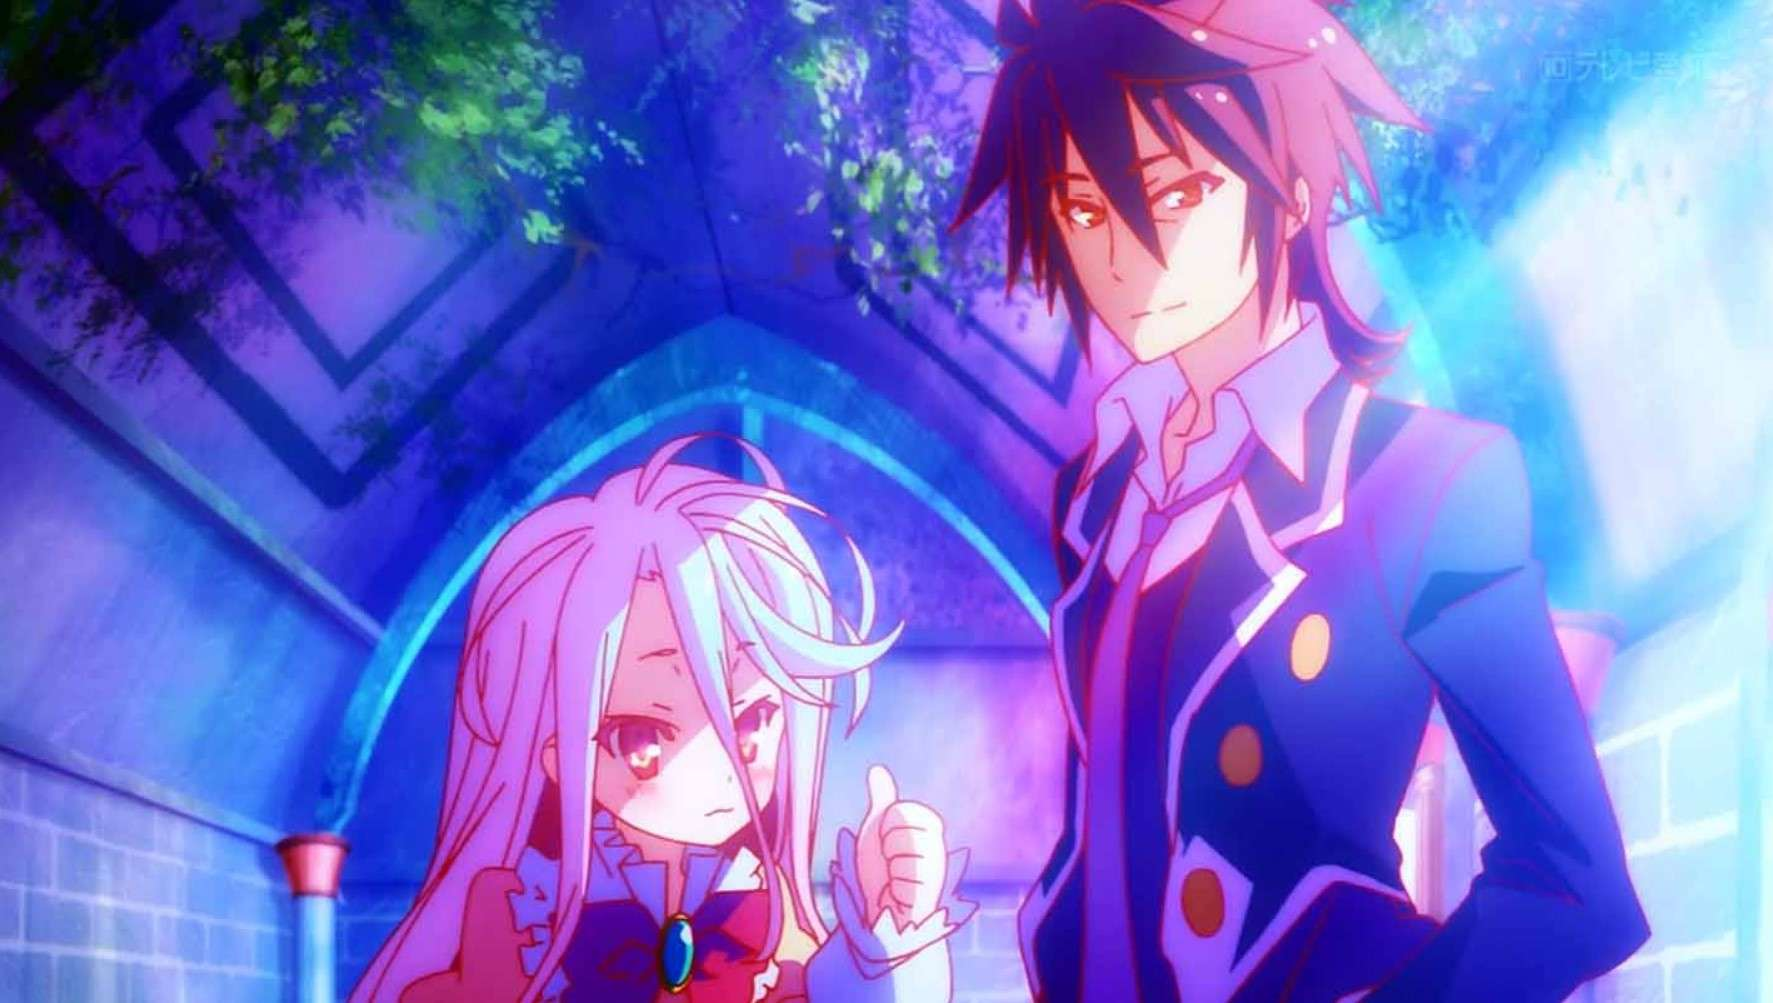 No Game No Life- anime like overlord